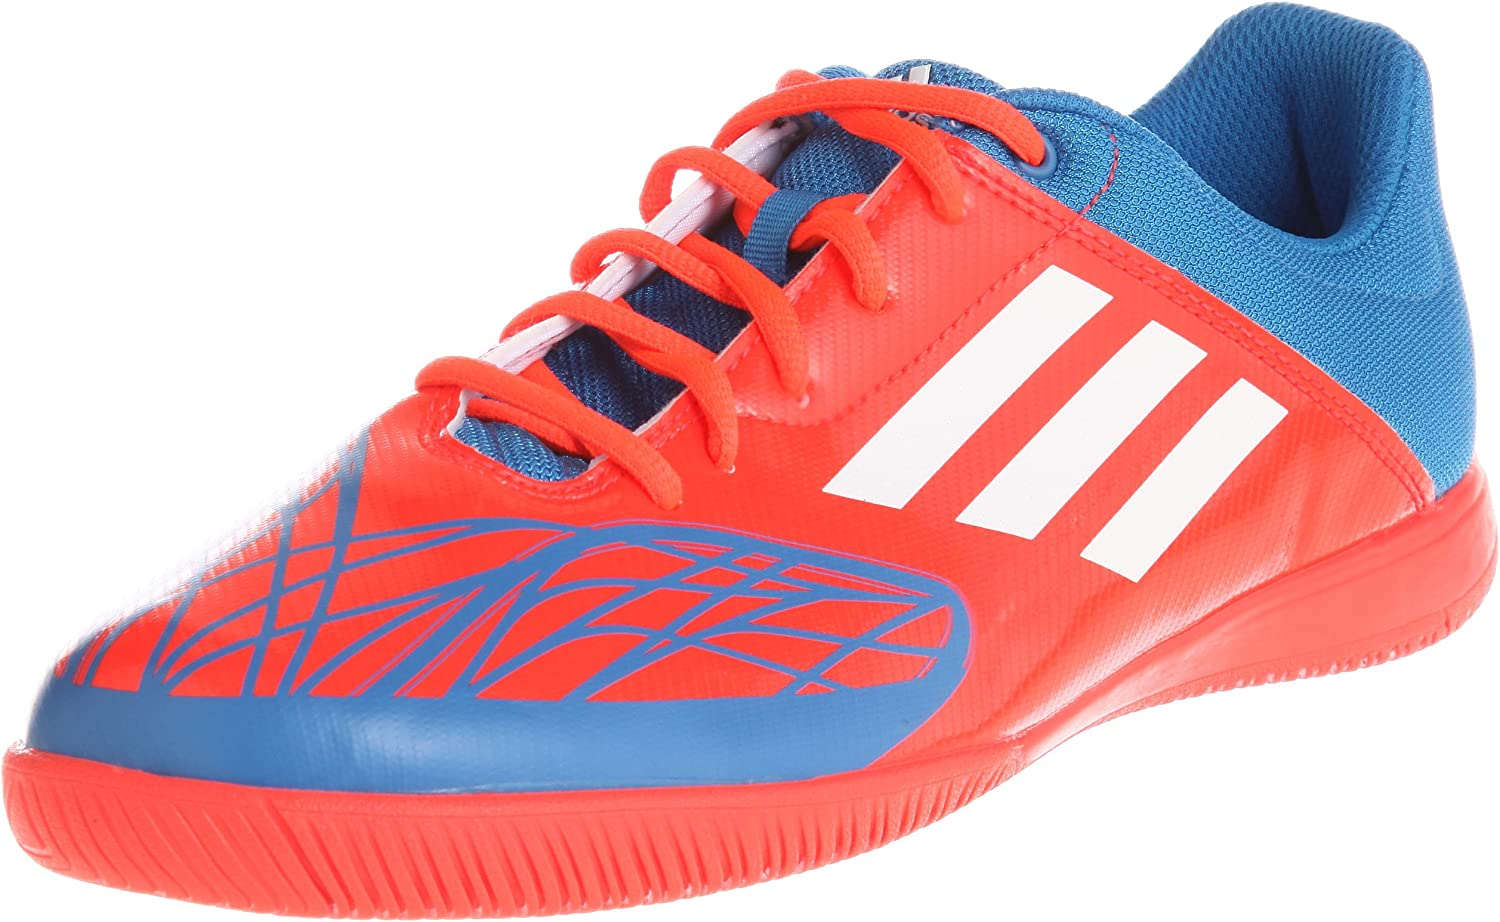 adidas Chaussures Hall Football Chaussures g61383 Chaussures